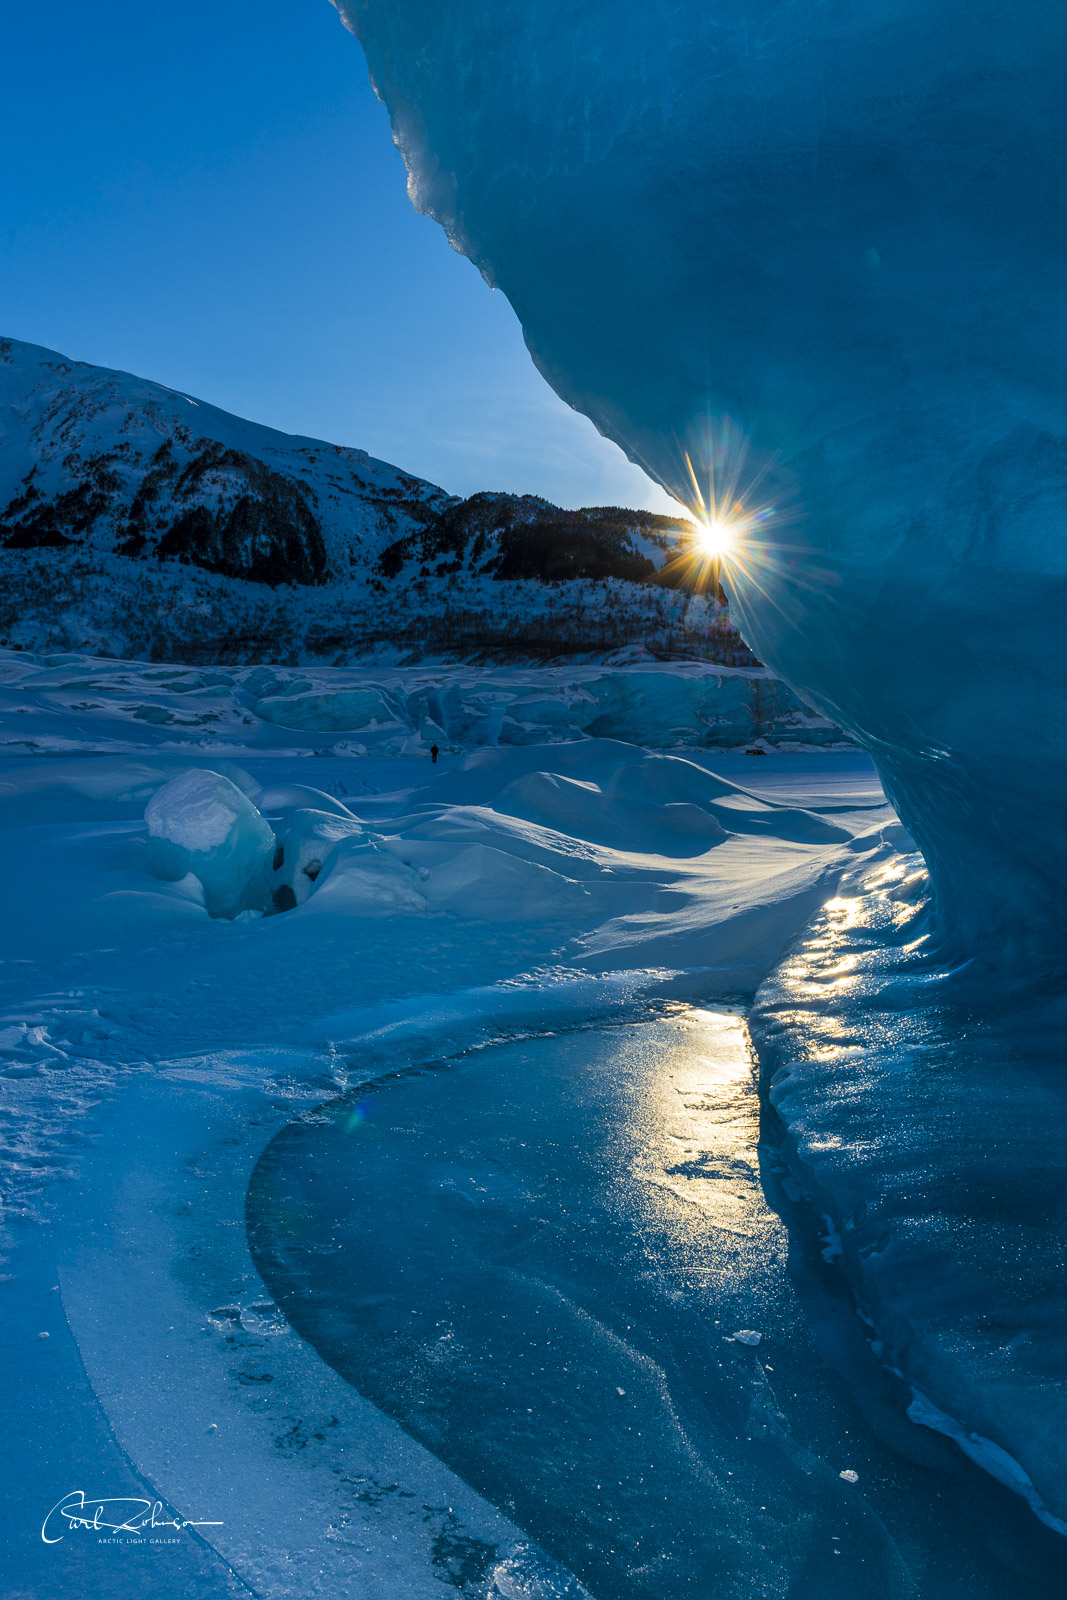 The late afternoon sun peeks from behind a large iceberg suspended in the frozen lake at Spencer Glacier.